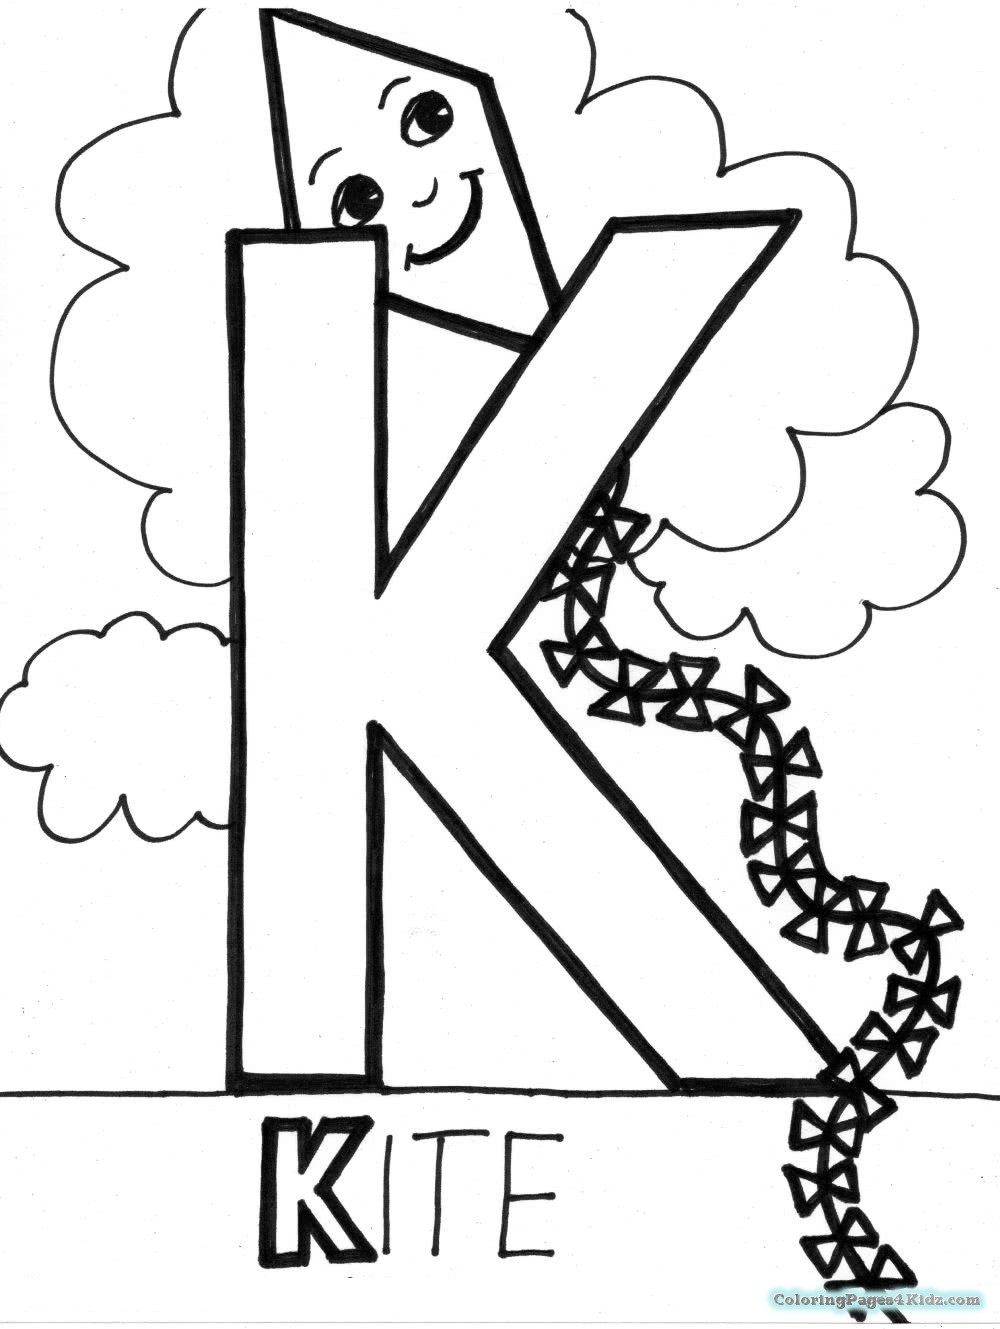 coloring letter k free letter k coloring pages for preschool preschool crafts coloring letter k